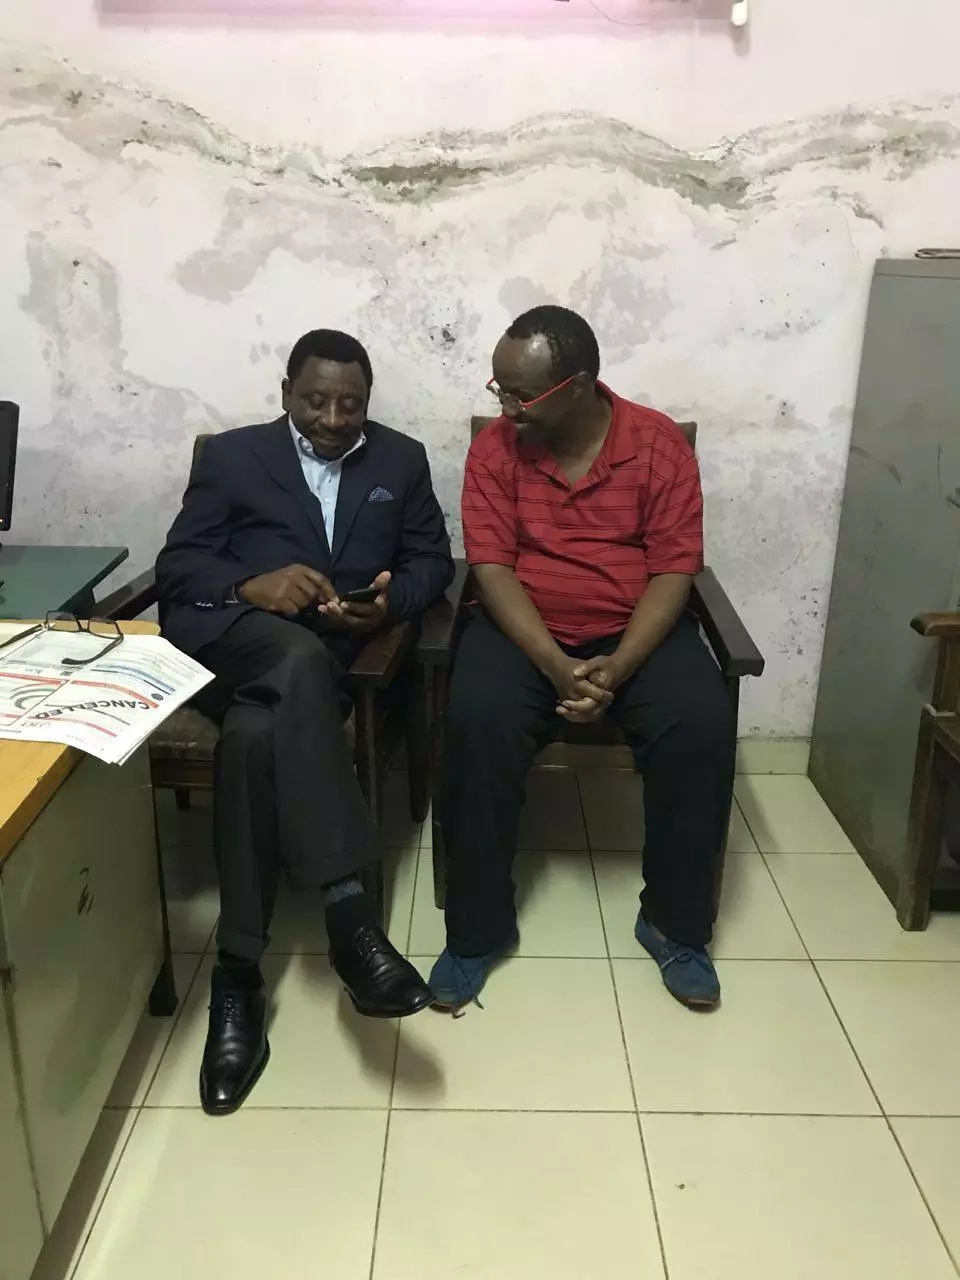 First photos of NASA strategist David Ndii emerge hours after dramatic arrest